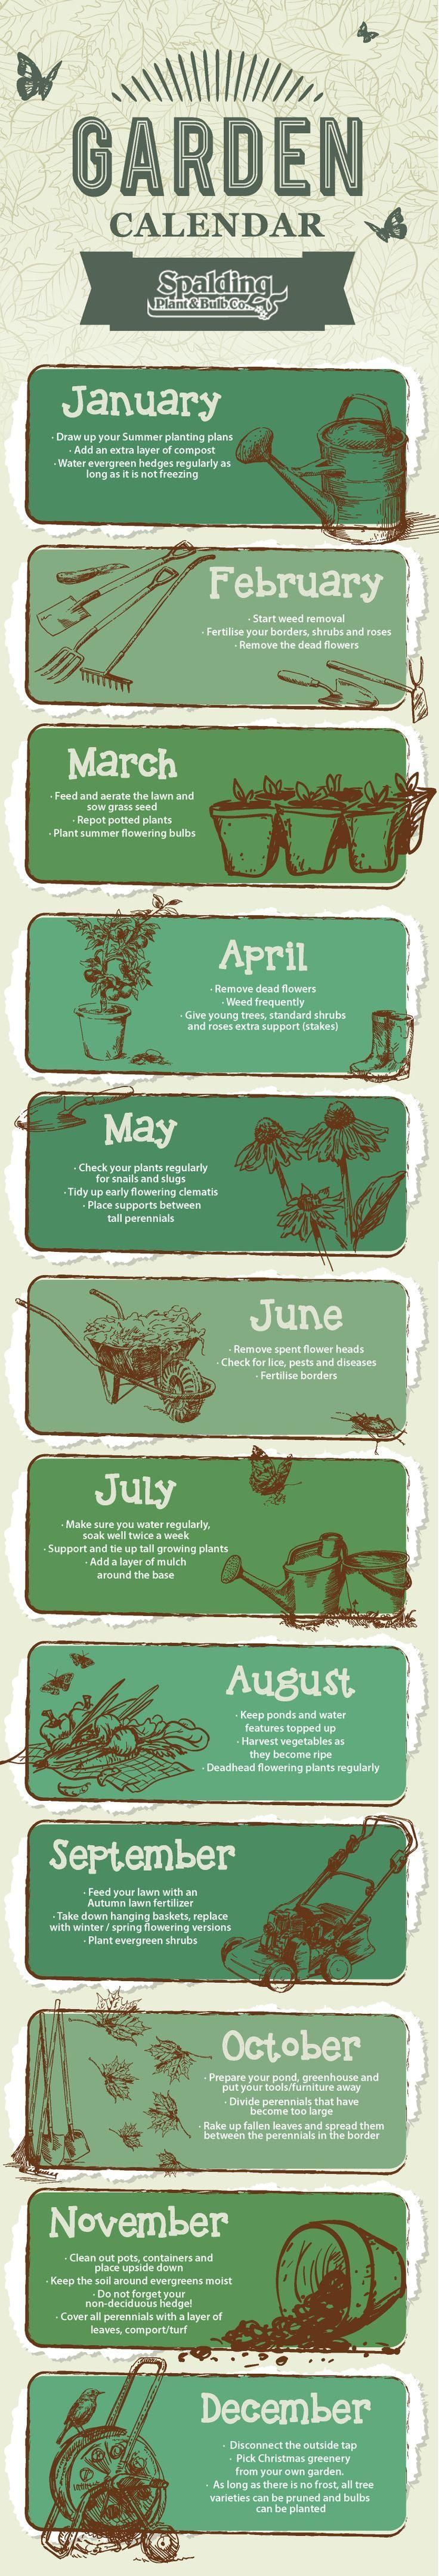 Gardening Calendar - Month by Month. Would not work for Alaska! But I think I just may need to come up with my own....